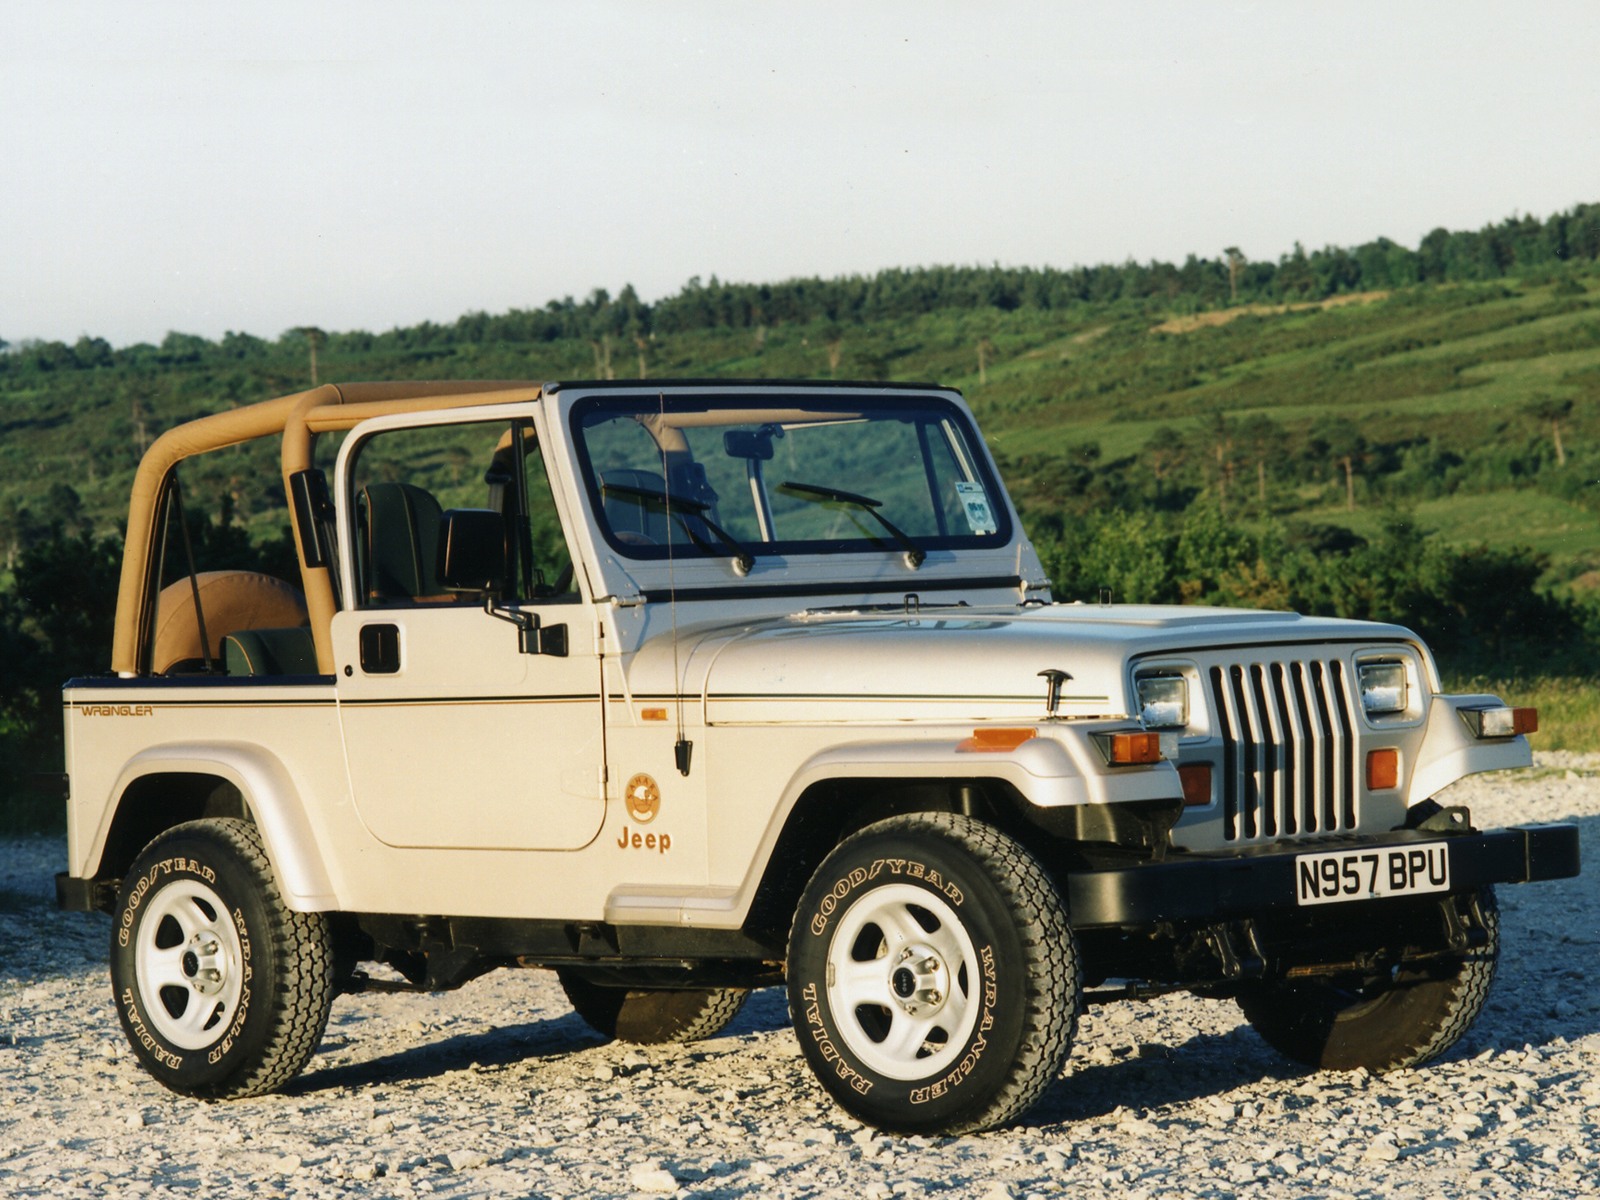 Jeep Wrangler Dealership >> Why You Should Buy A Jeep Wrangler Right Now - The AutoTempest Blog